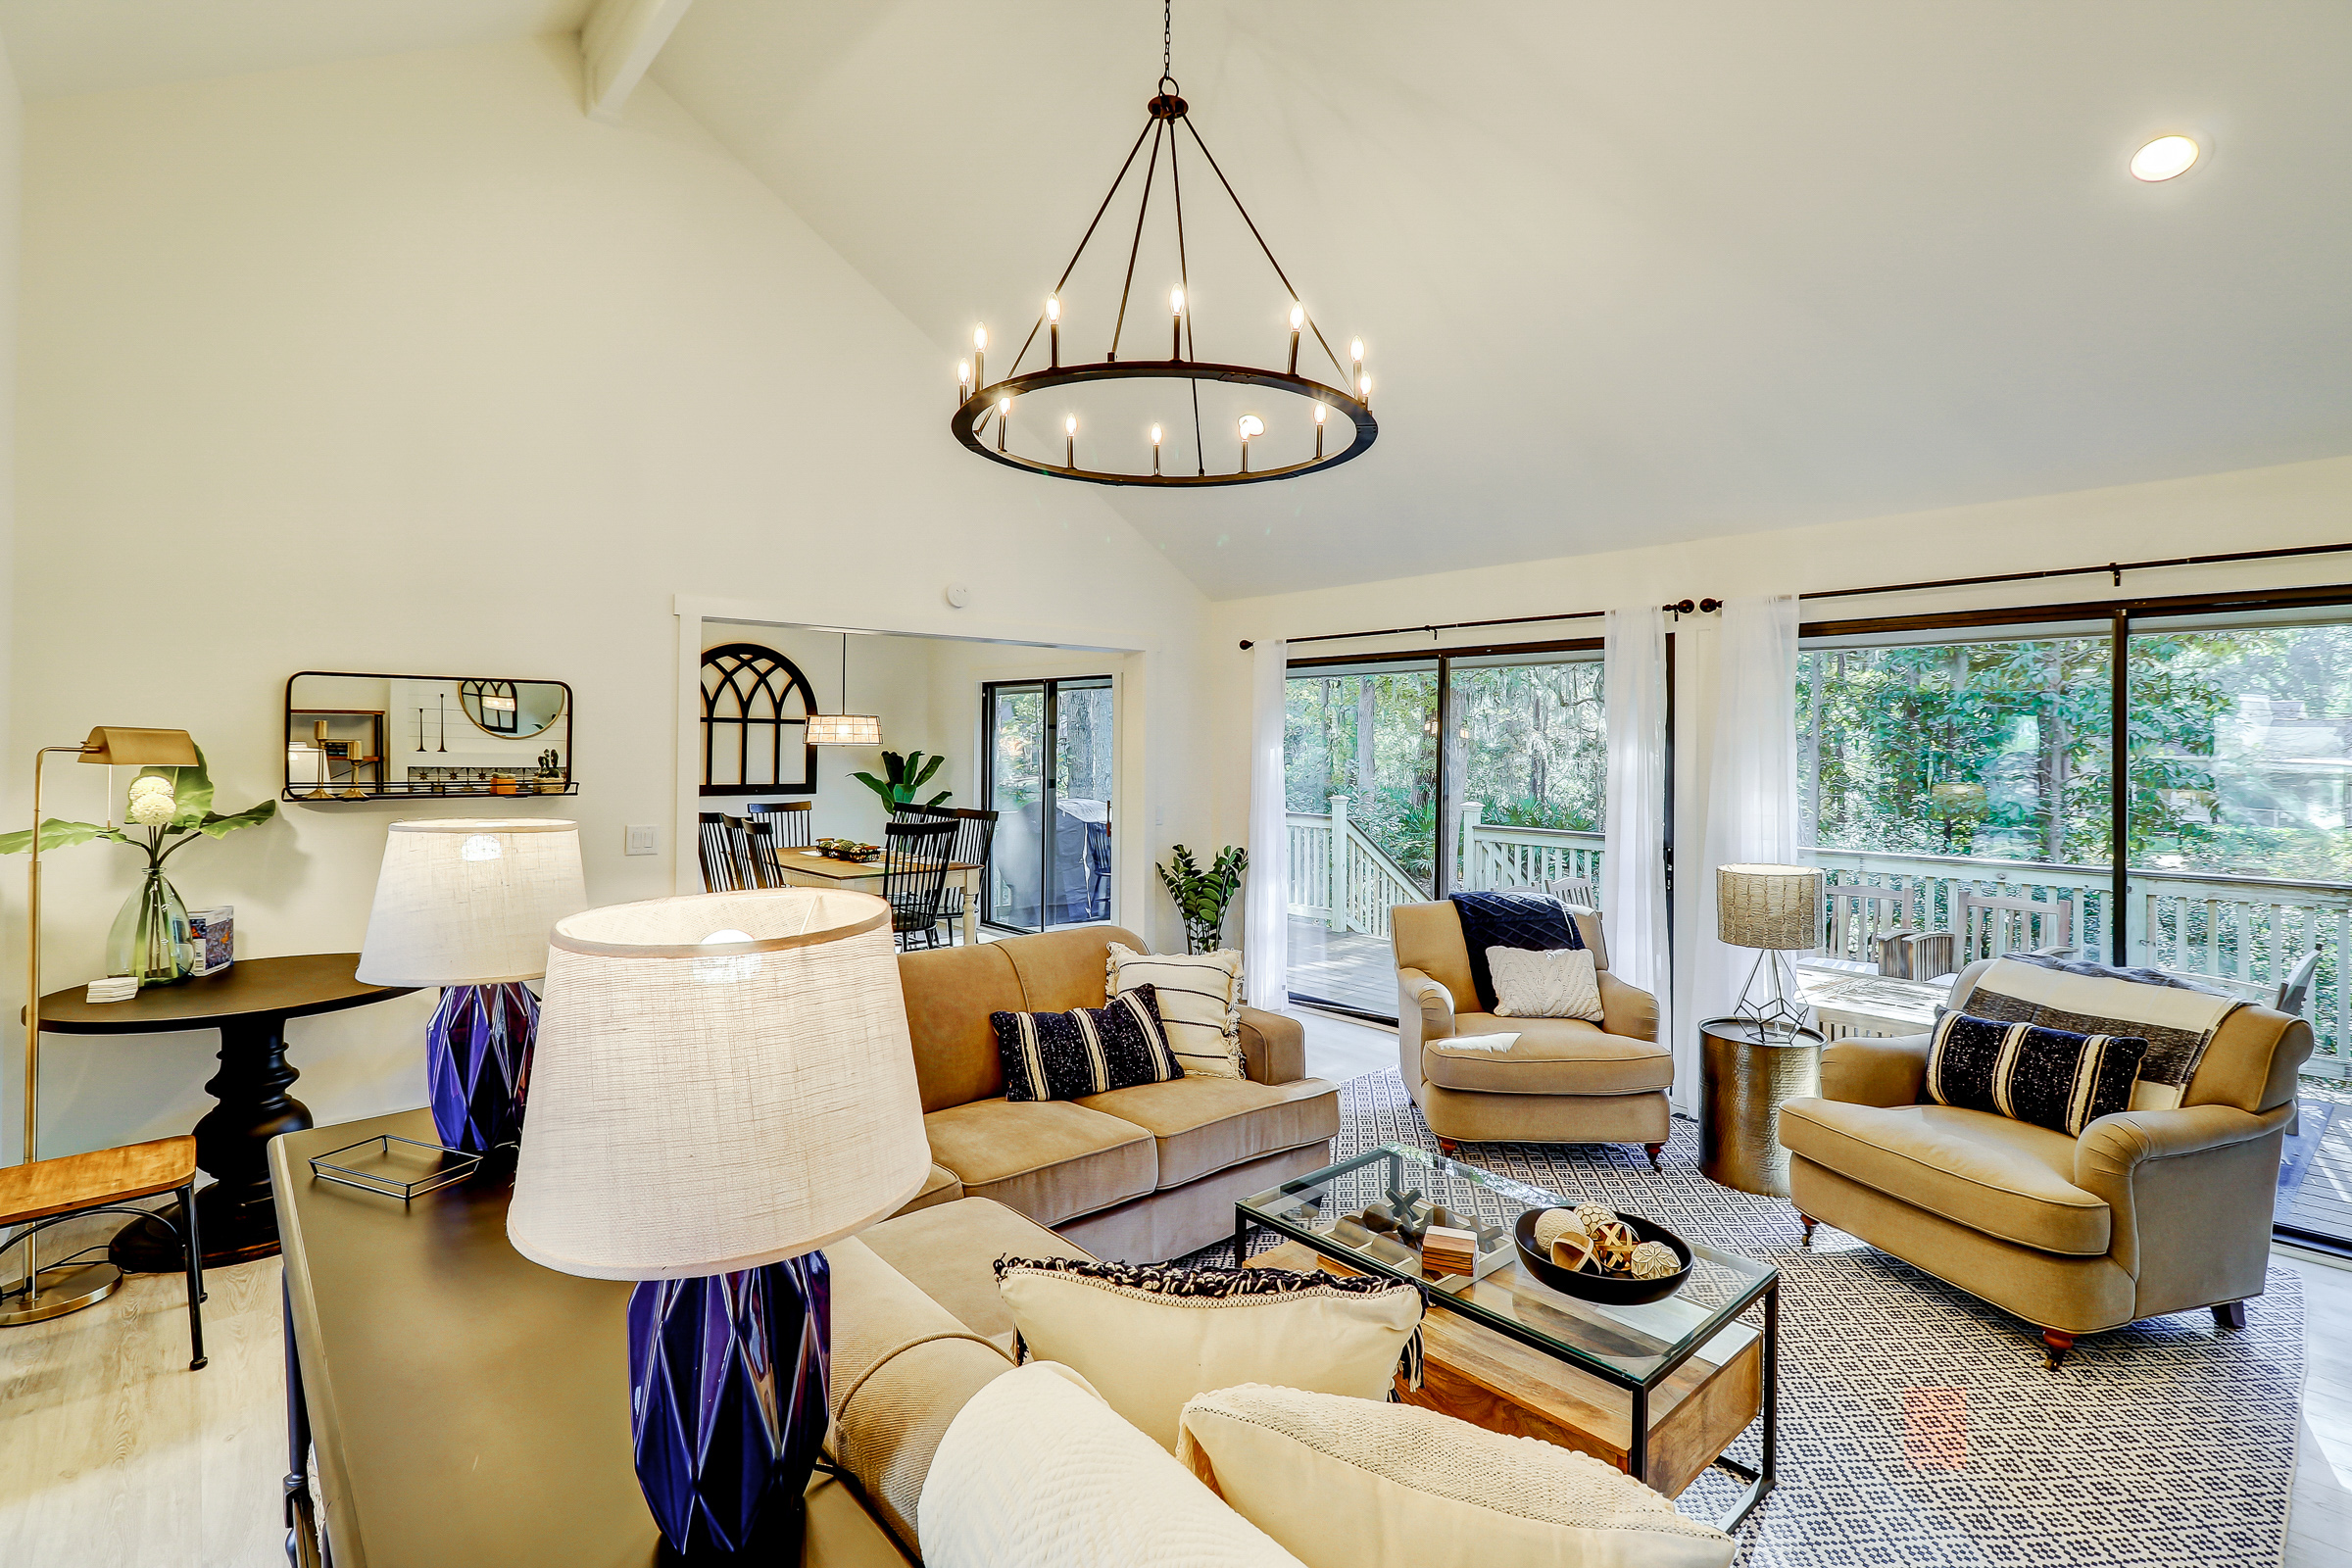 Hilton Head SC Vacation Rental Stretch out on